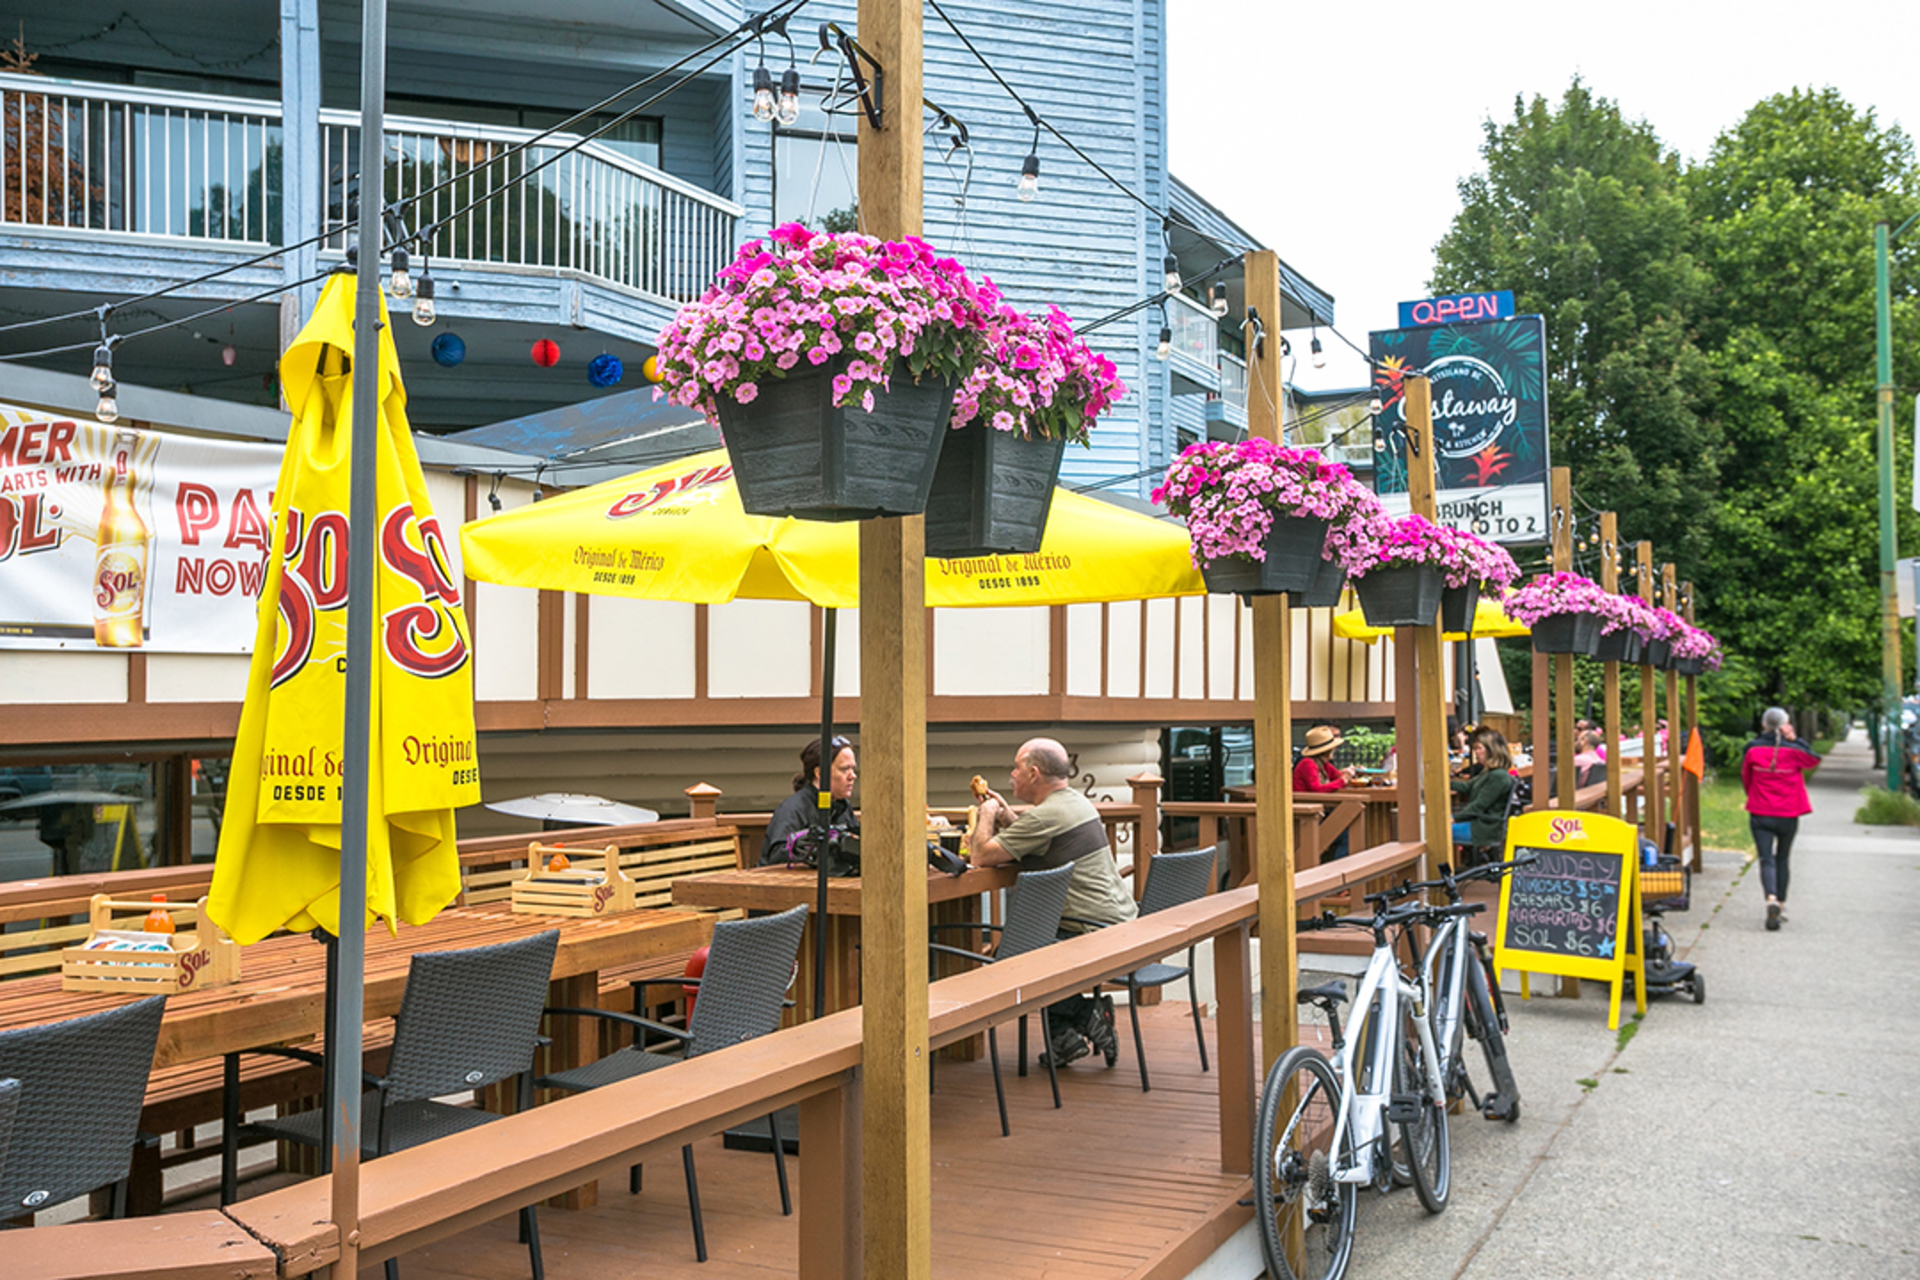 20190609-1j6a8549 at 3228 West 3rd Avenue, Kitsilano, Vancouver West